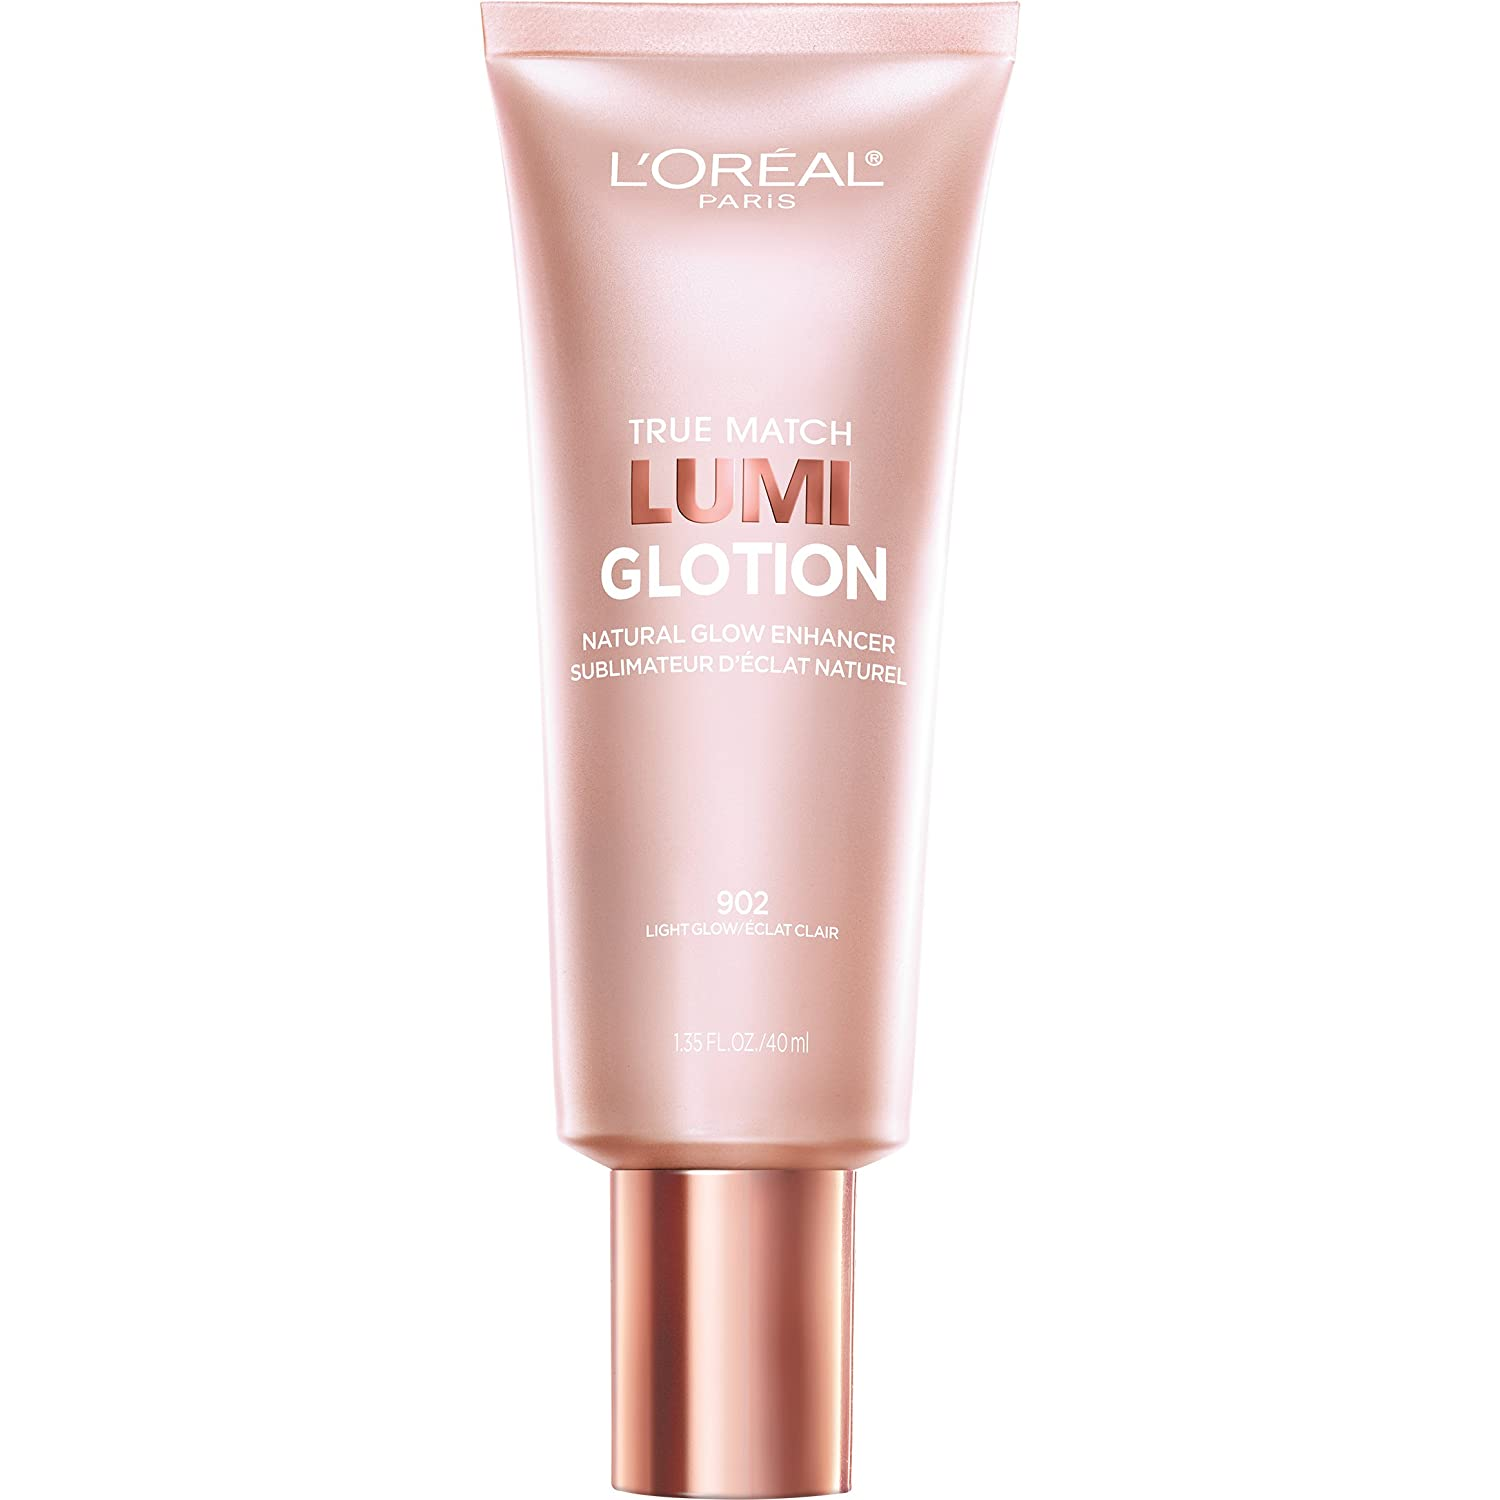 L'OREAL True Match Lumi Glotion Natural Glow Enhancer - Light Glow L' Oreal